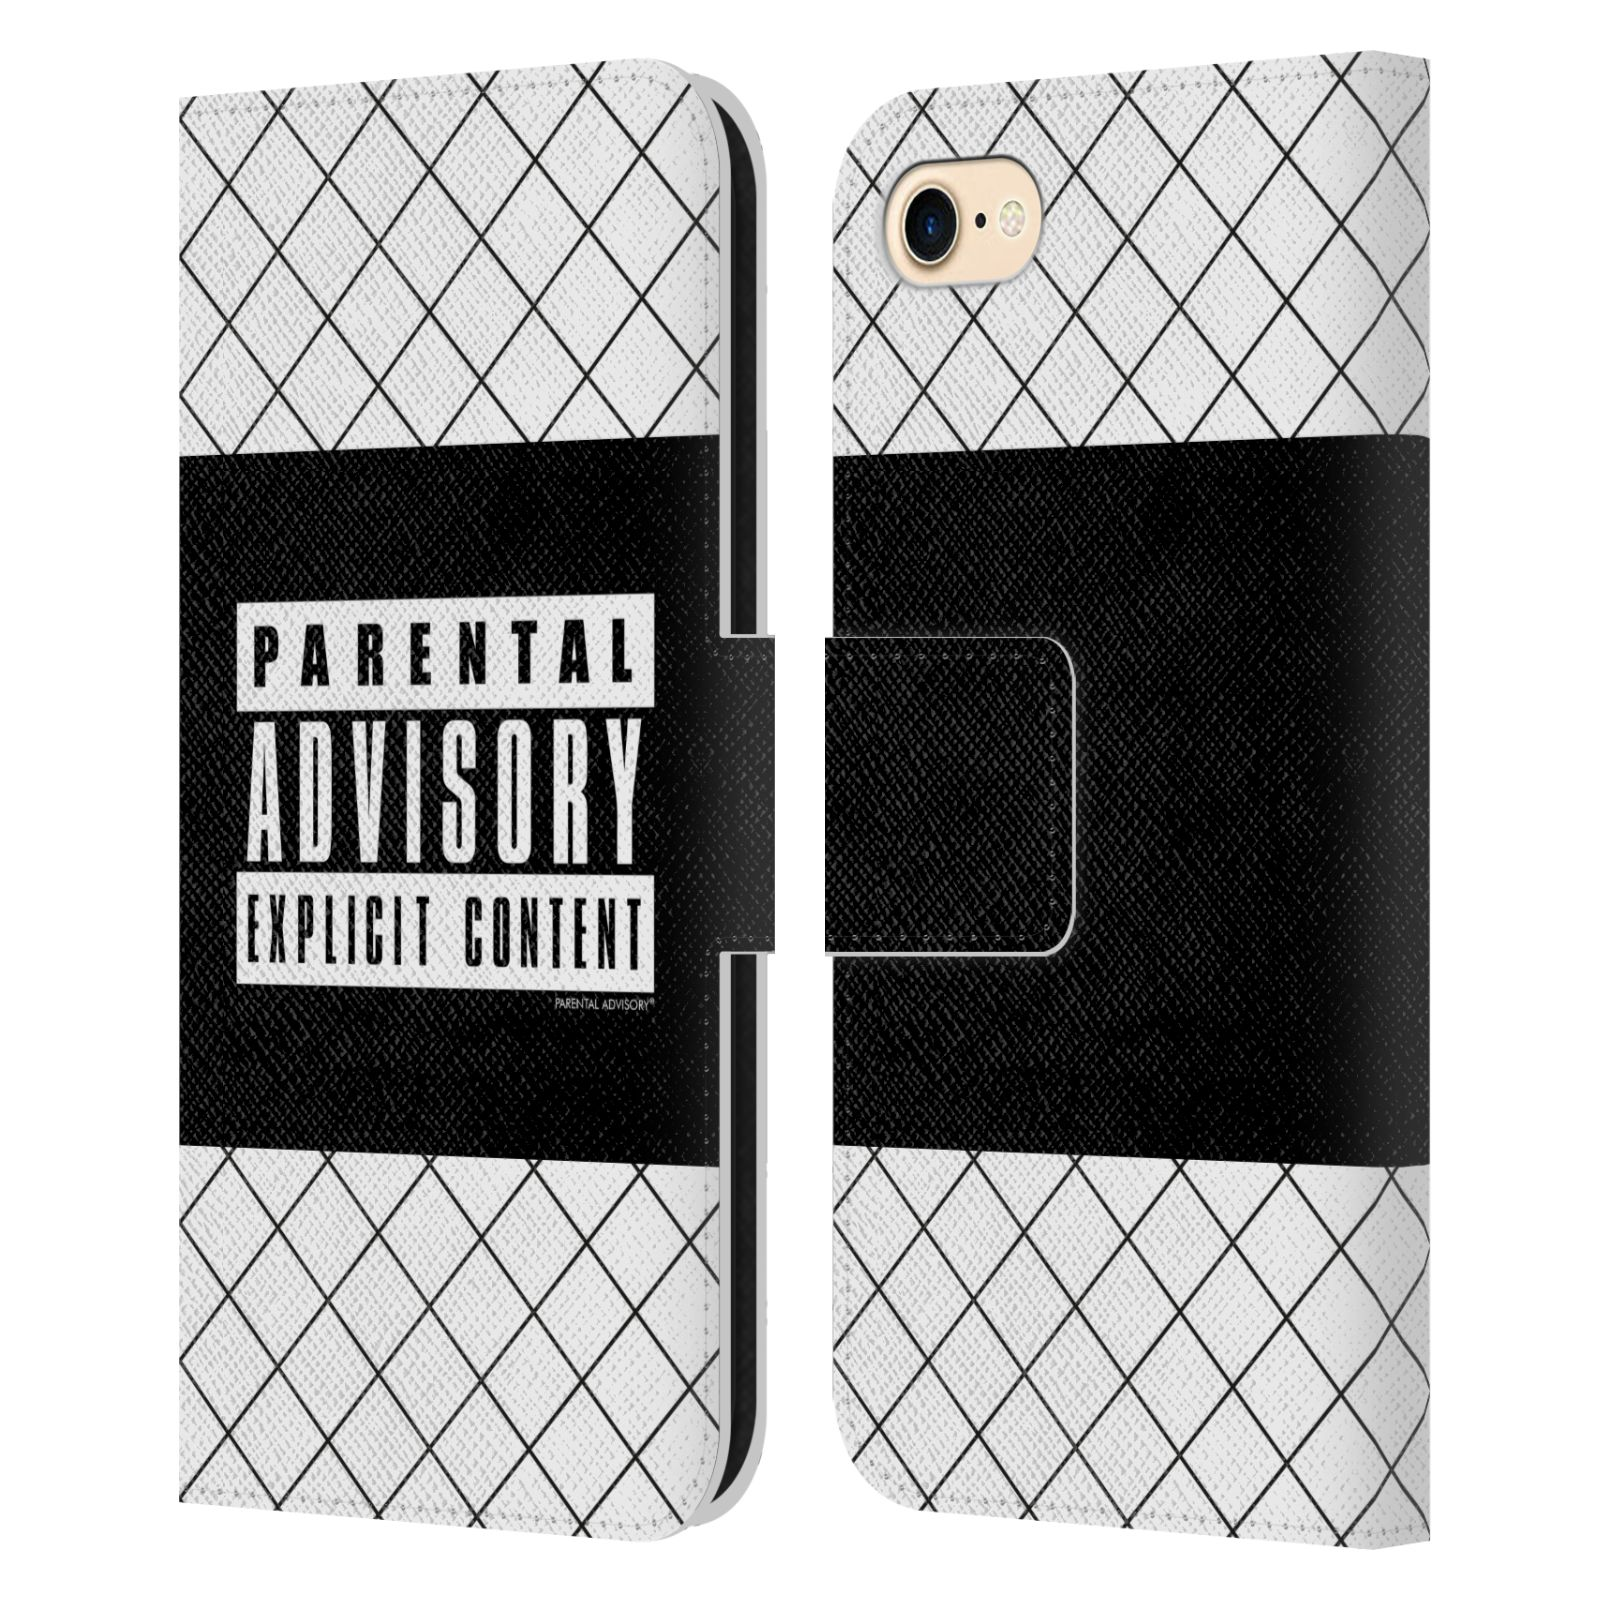 Official Parental Advisory Punk Rock Net Leather Book Case For Apple iPhone 7 / 8 / iPhone SE 2020